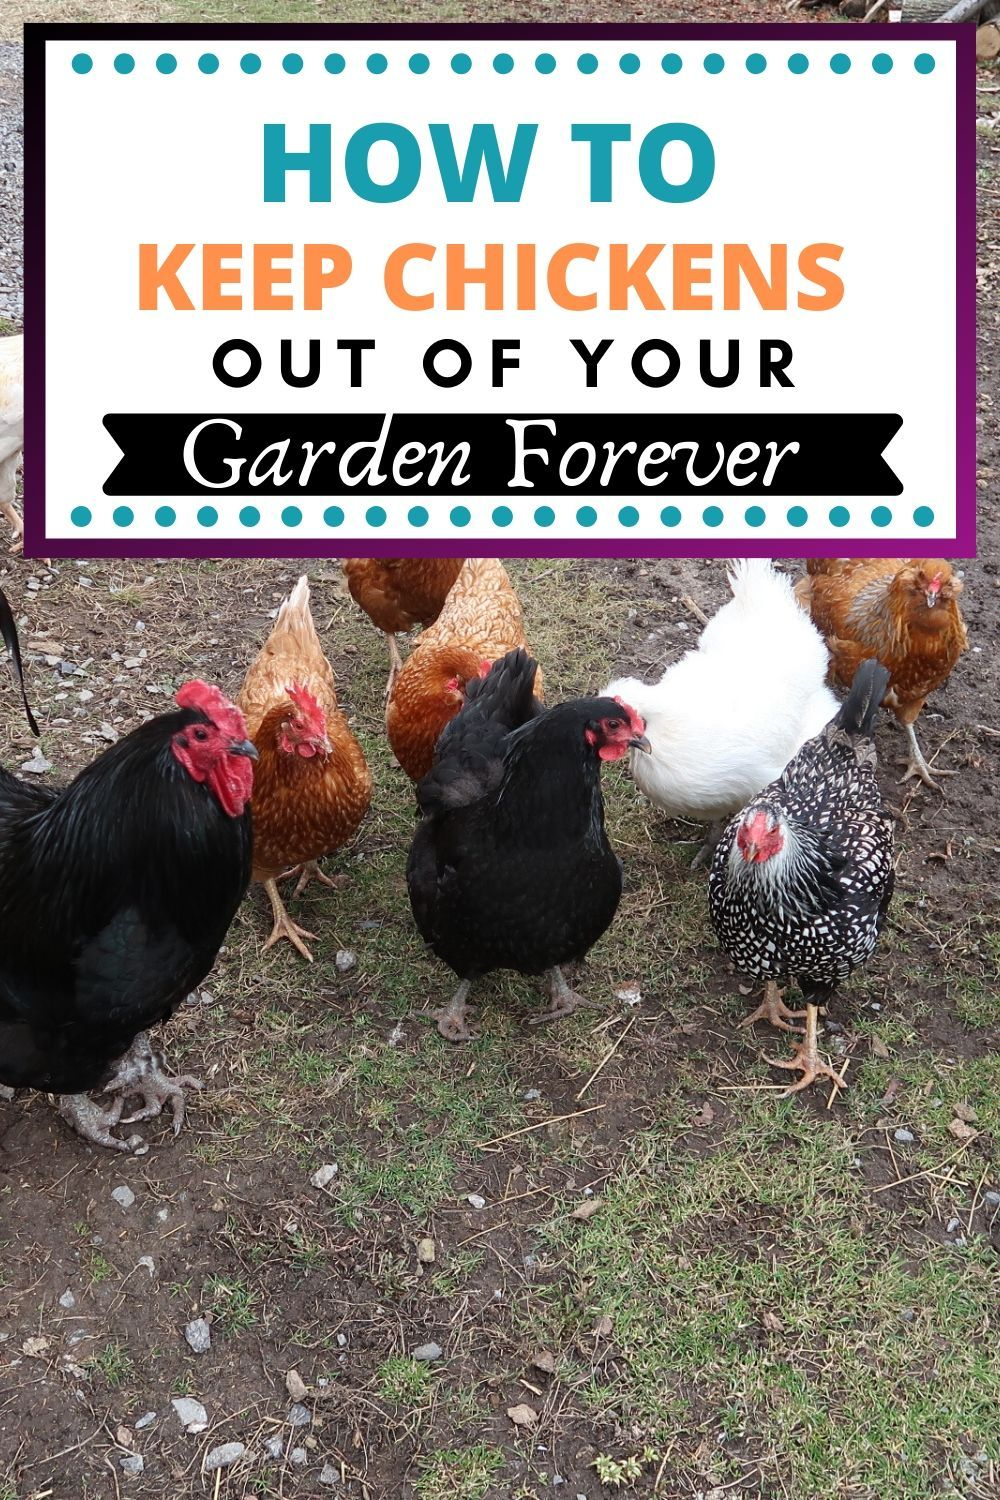 Gardening With Free Range Chickens For Dummies